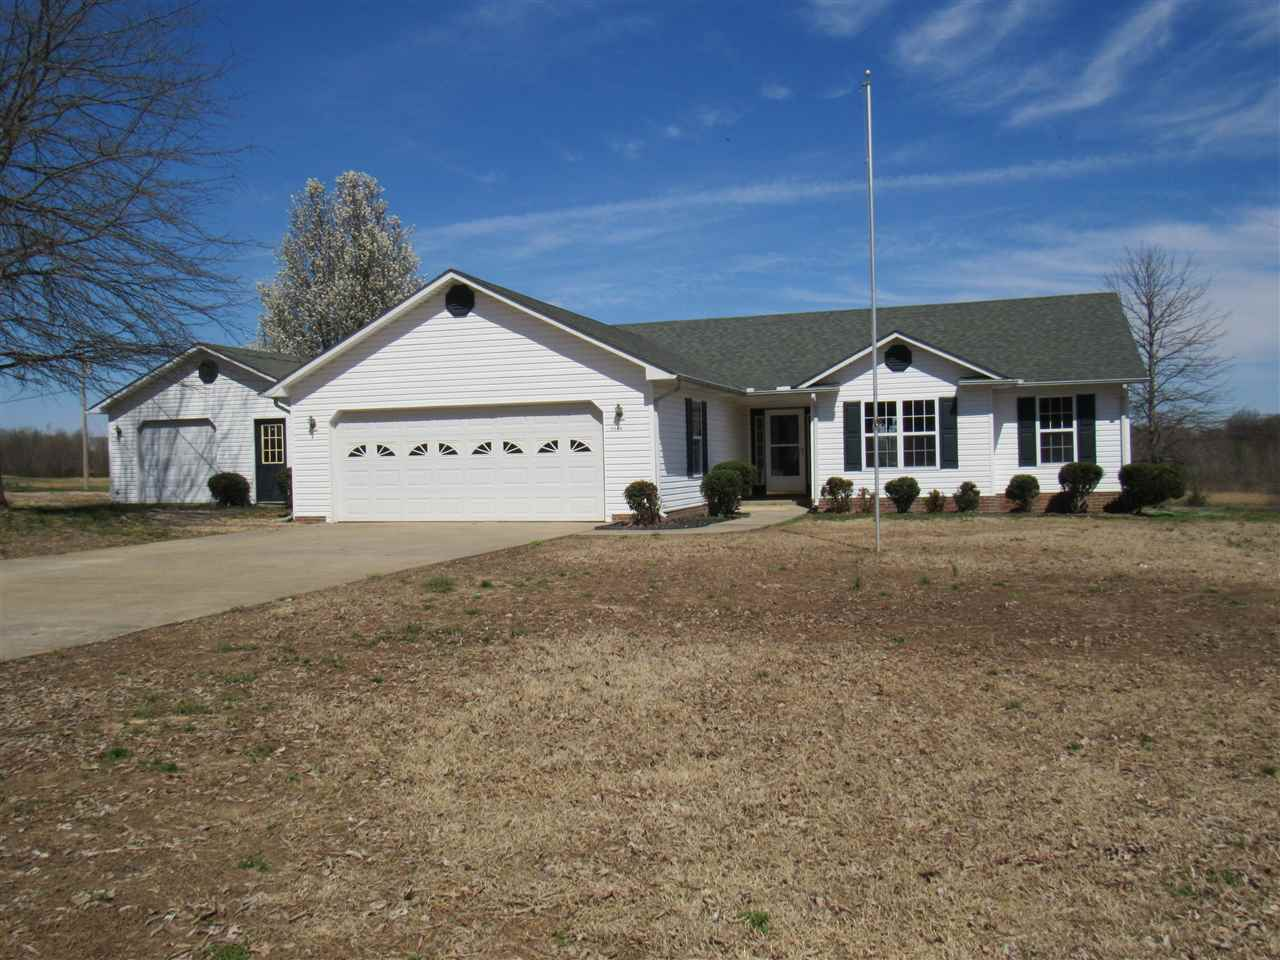 1560 Red Bell Rd,Newbern,Tennessee 38059,4 Bedrooms Bedrooms,3 BathroomsBathrooms,Residential,1560 Red Bell Rd,187090